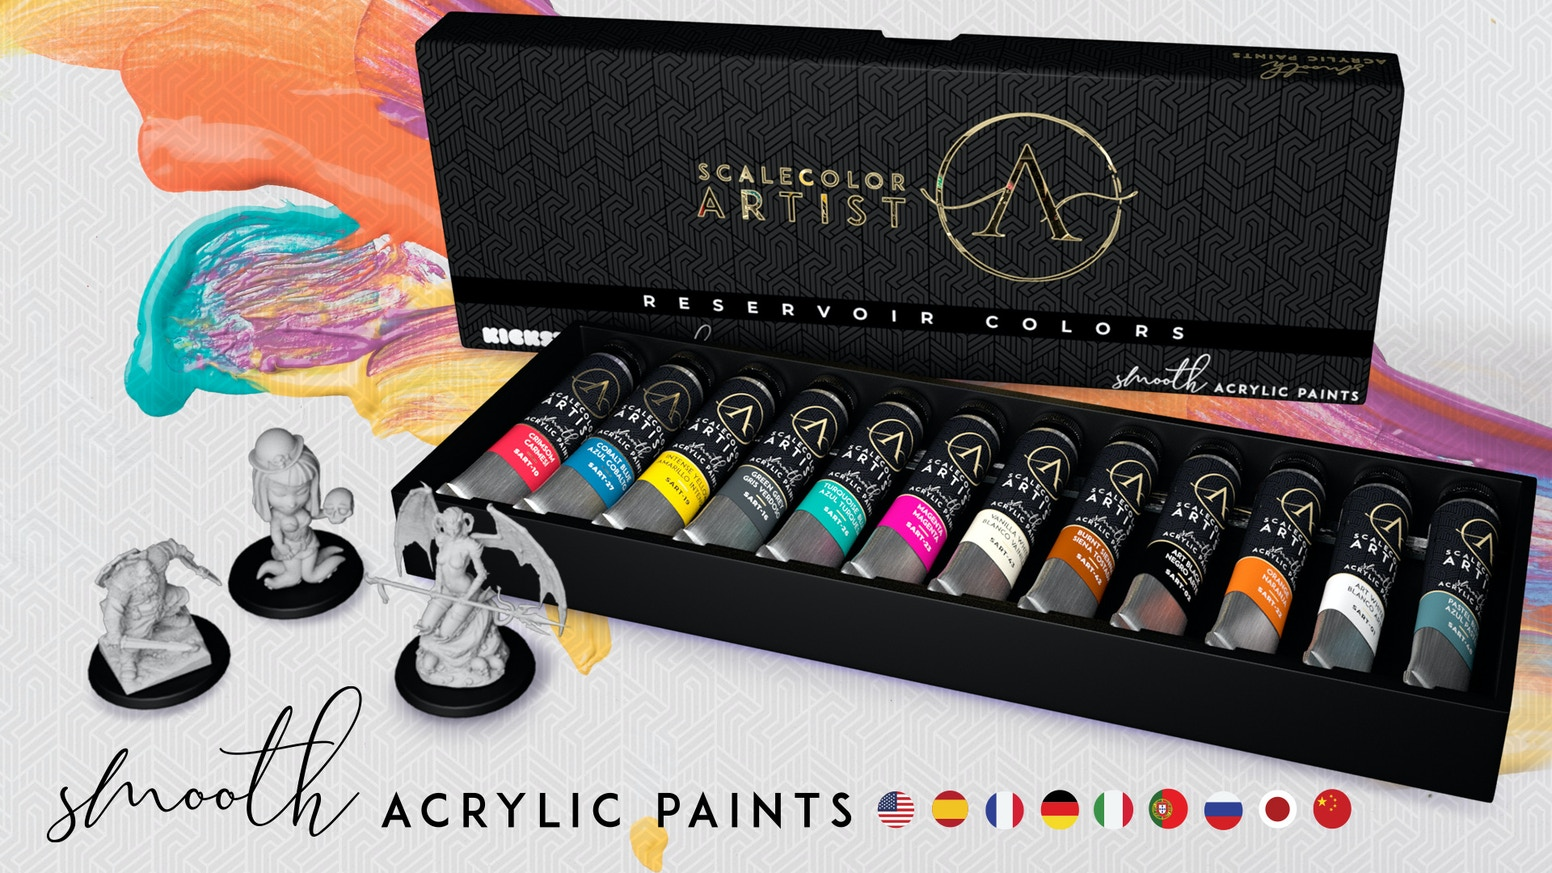 SCALE75 is expanding its well-known range of acrylic paints for models and miniatures, presenting a new format and formulation.